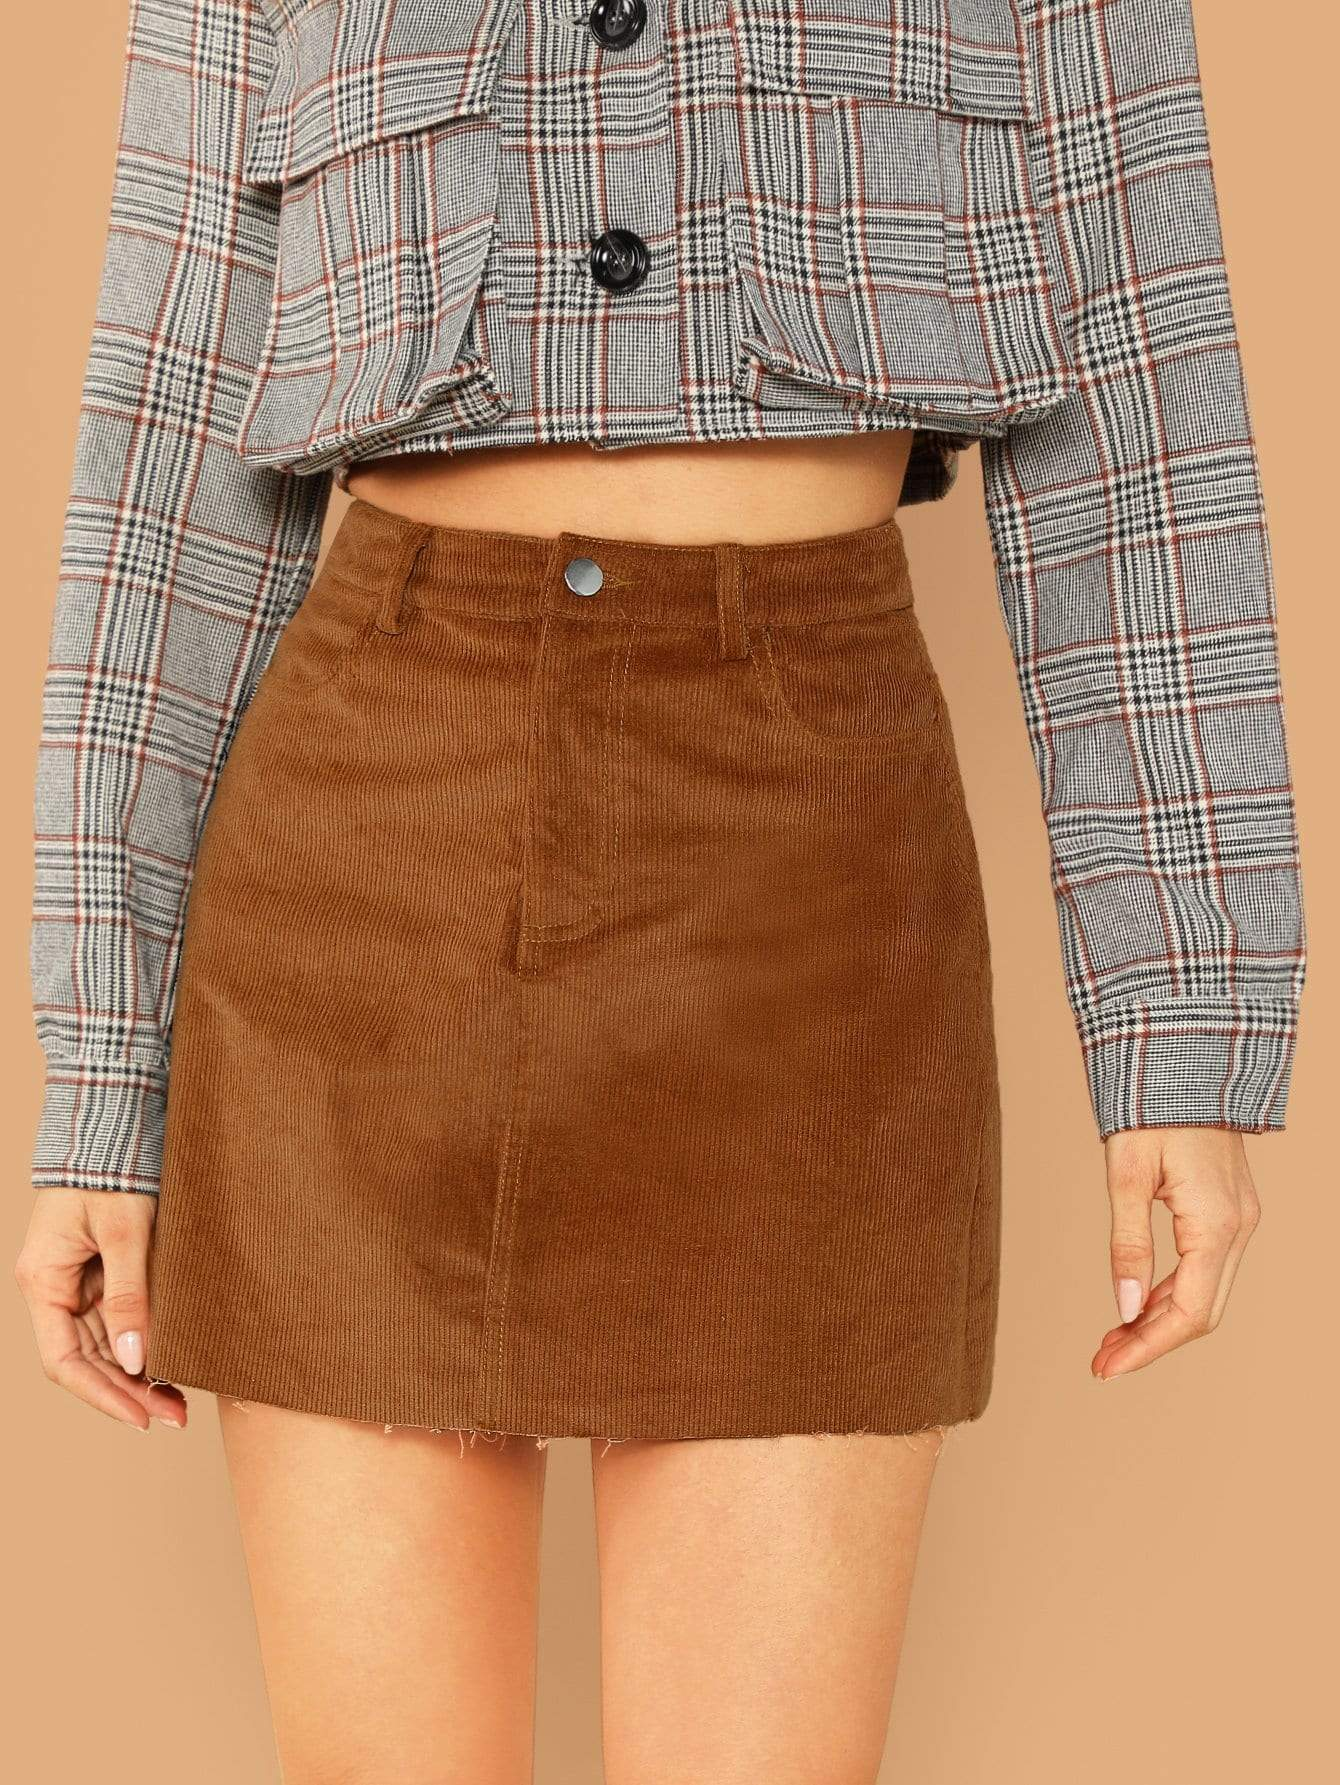 6184ae6d1be3 pocket patched raw hem cord skirt. #skirts #bottoms #women #fashion. Visit.  February 2019